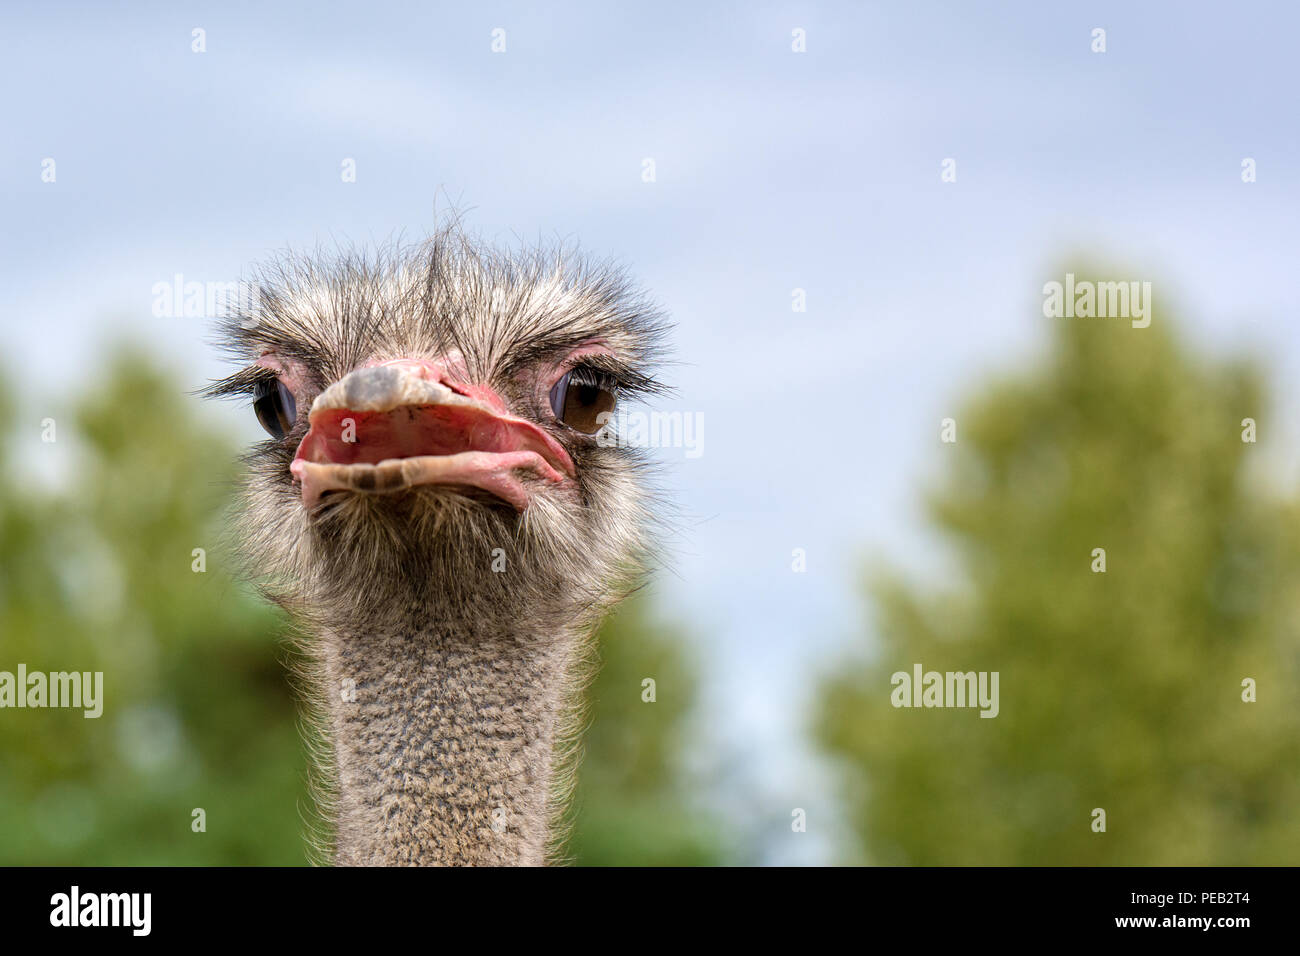 The head of an ostrich closeup on a blurred background. - Stock Image